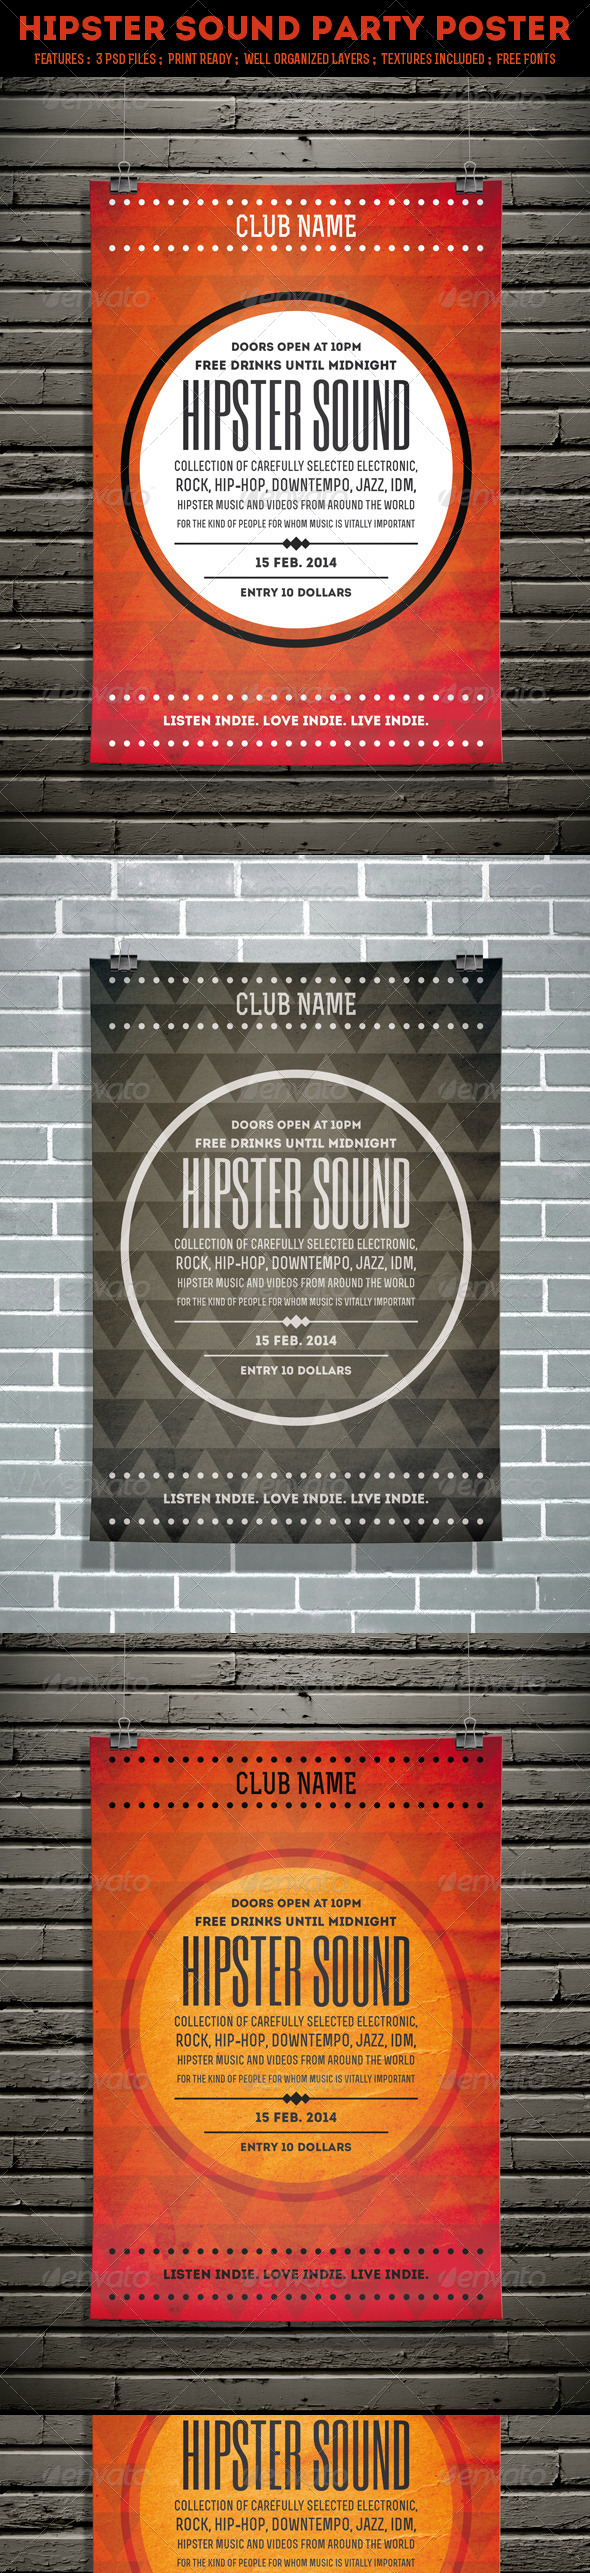 Hipster Sound Party Poster - Concerts Events